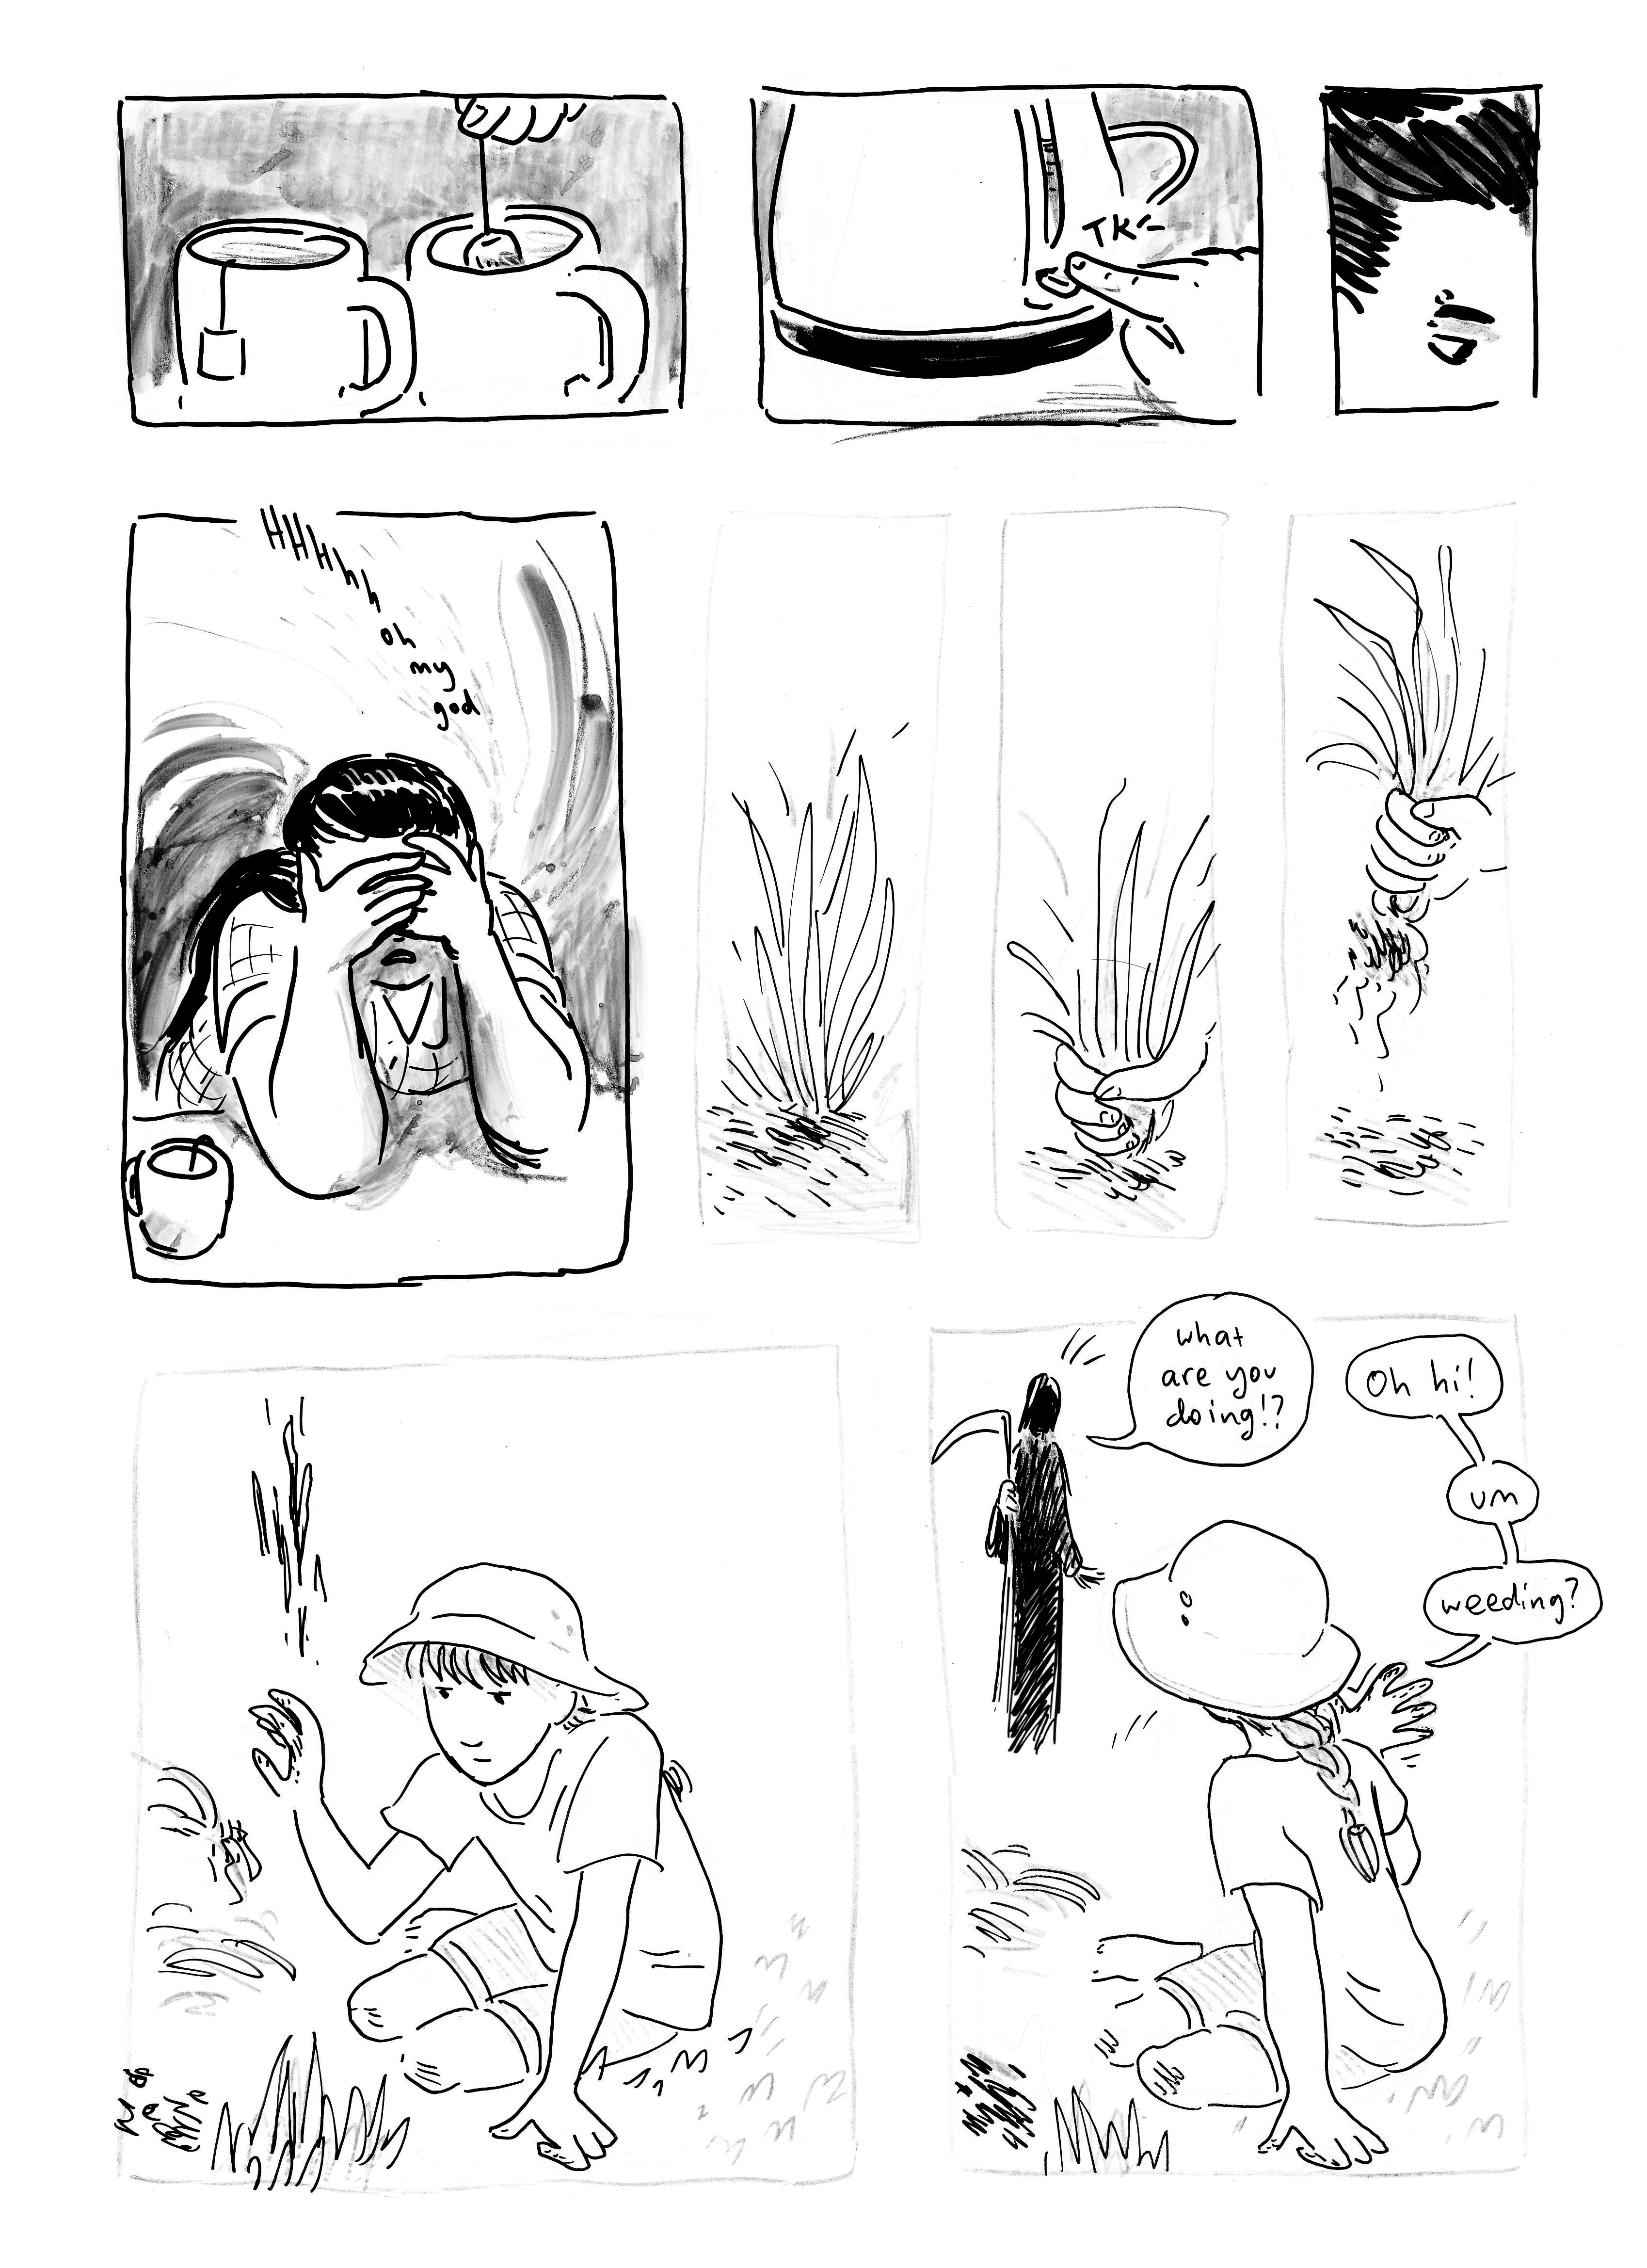 this may be the only time weeds are discussed in the comic, despite my website's general aesthetic theme